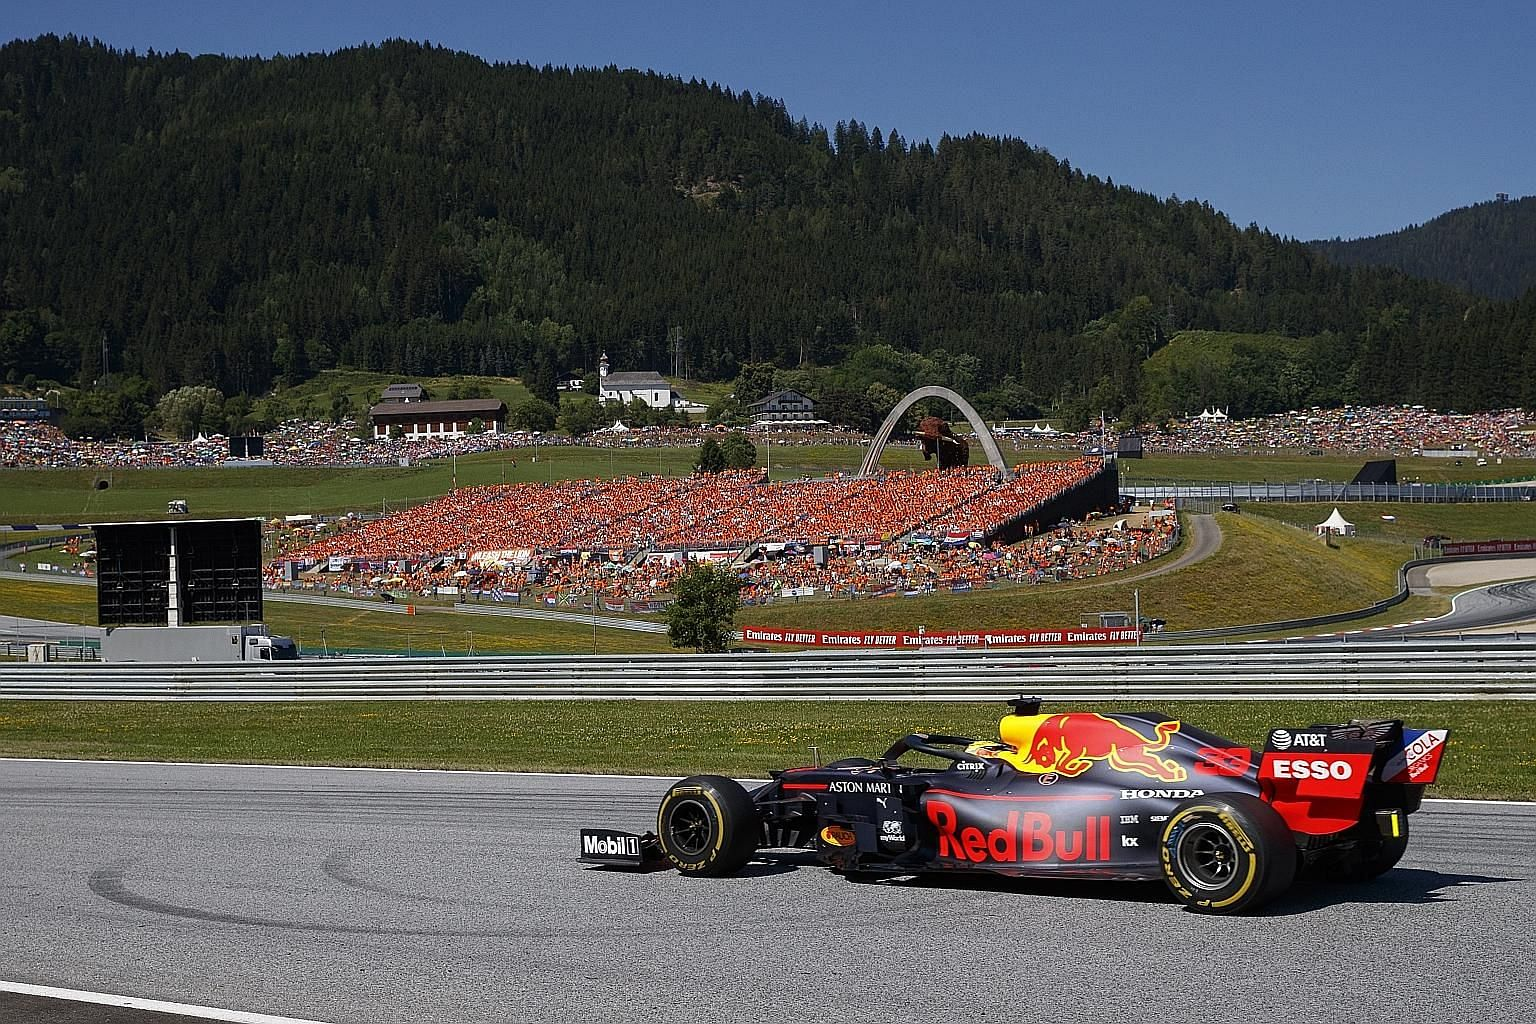 Red Bull's Max Verstappen being cheered by a sea of orange, his fellow Dutchmen, to victory in last Sunday's Austrian GP in Spielberg. Still only 21, it was his sixth victory from 90 race starts. PHOTO: EPA-EFE